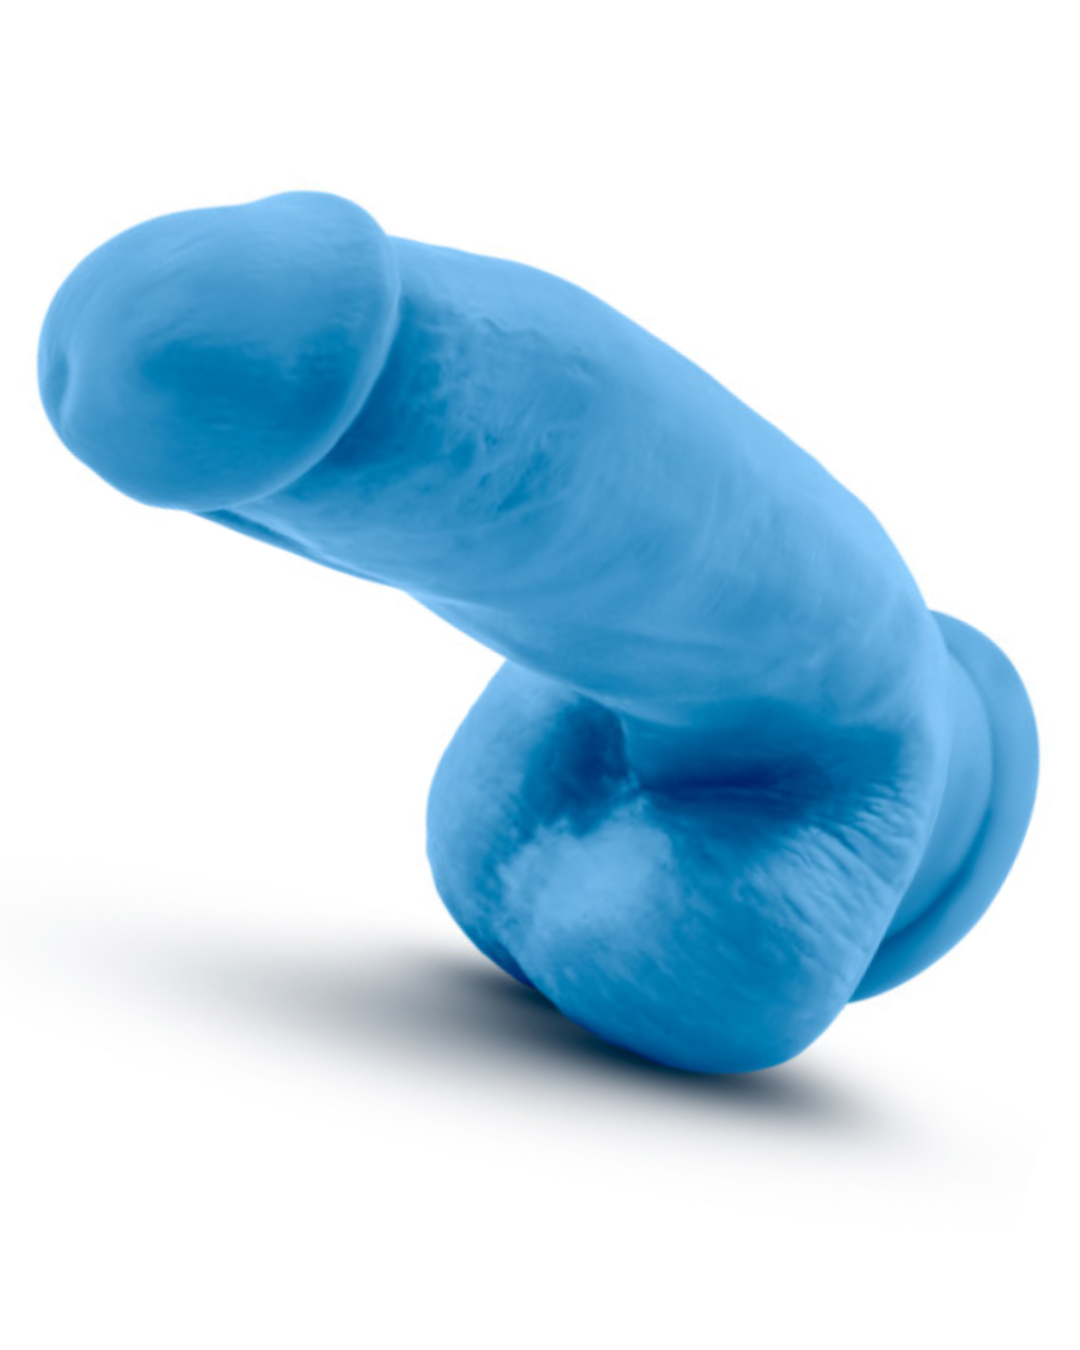 Neo Elite 7 Inch Dual Density Silicone Dildo with Balls by Blush - Neon Blue horizontal view of the tip